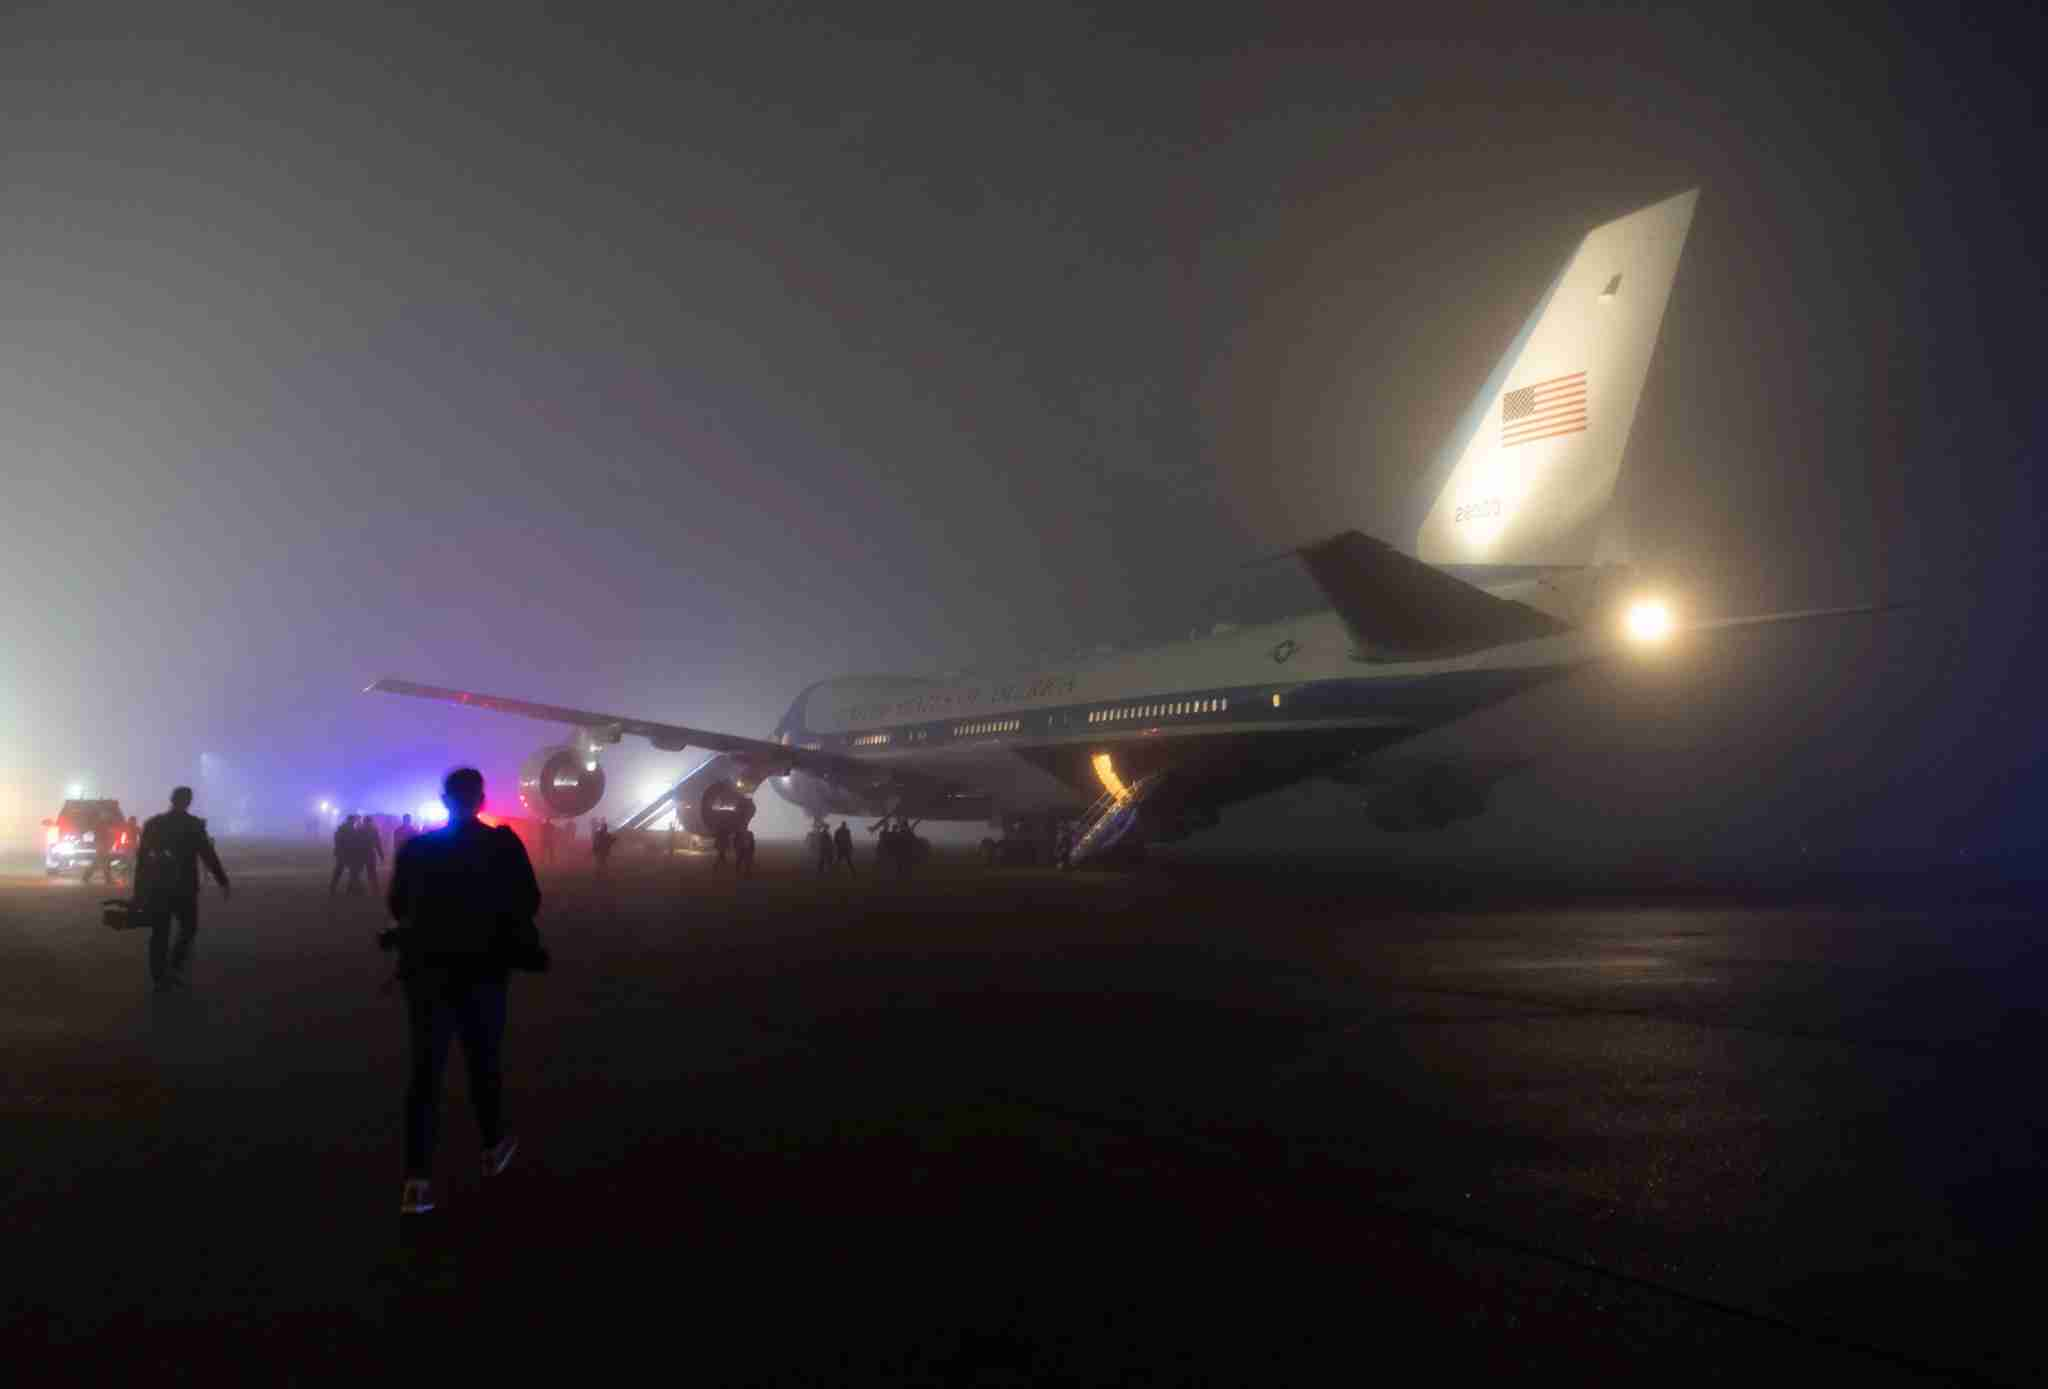 Reporters and staff board Air Force One in heavy fog prior to departing from Louis Armstrong New Orleans International Airport in Kenner, Louisiana, January 14, 2020, as US President Donald Trump and First Lady Melania Trump travel to attend the College Football Playoff National Championship game. (Photo by SAUL LOEB / AFP) (Photo by SAUL LOEB/AFP via Getty Images)